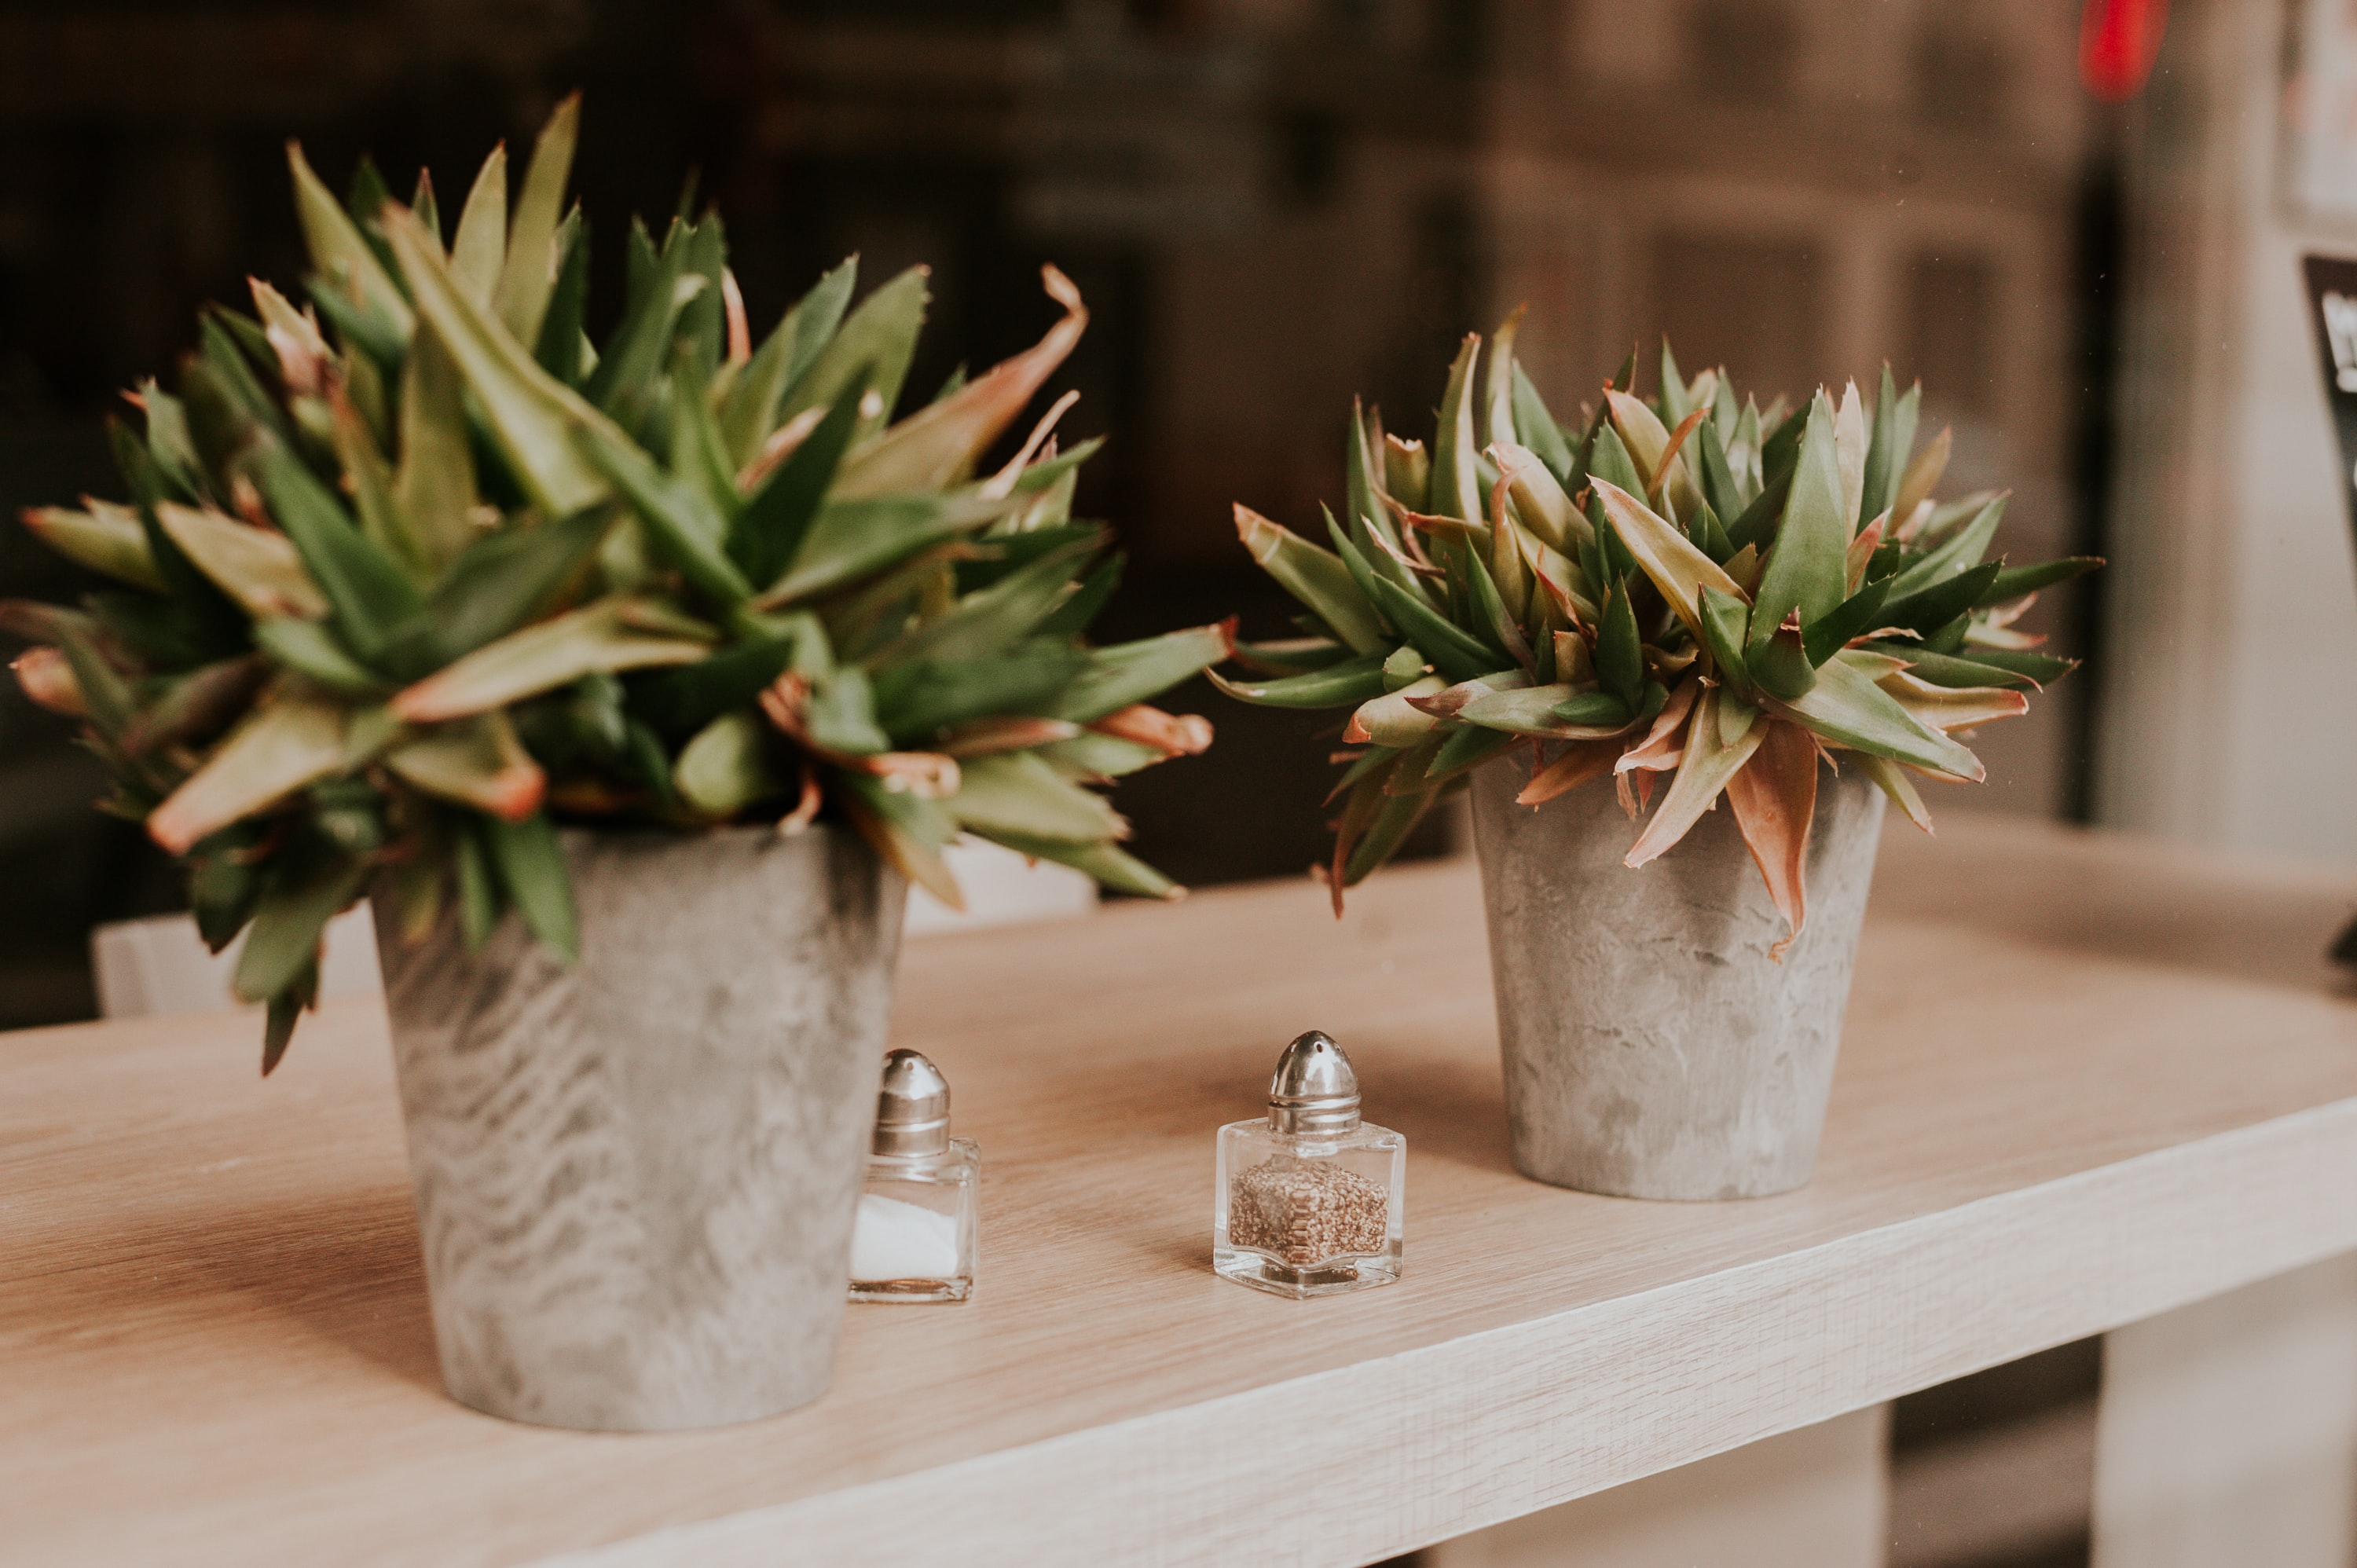 Two potted plants sitting on a wooden shelf with a salt and pepper shaker